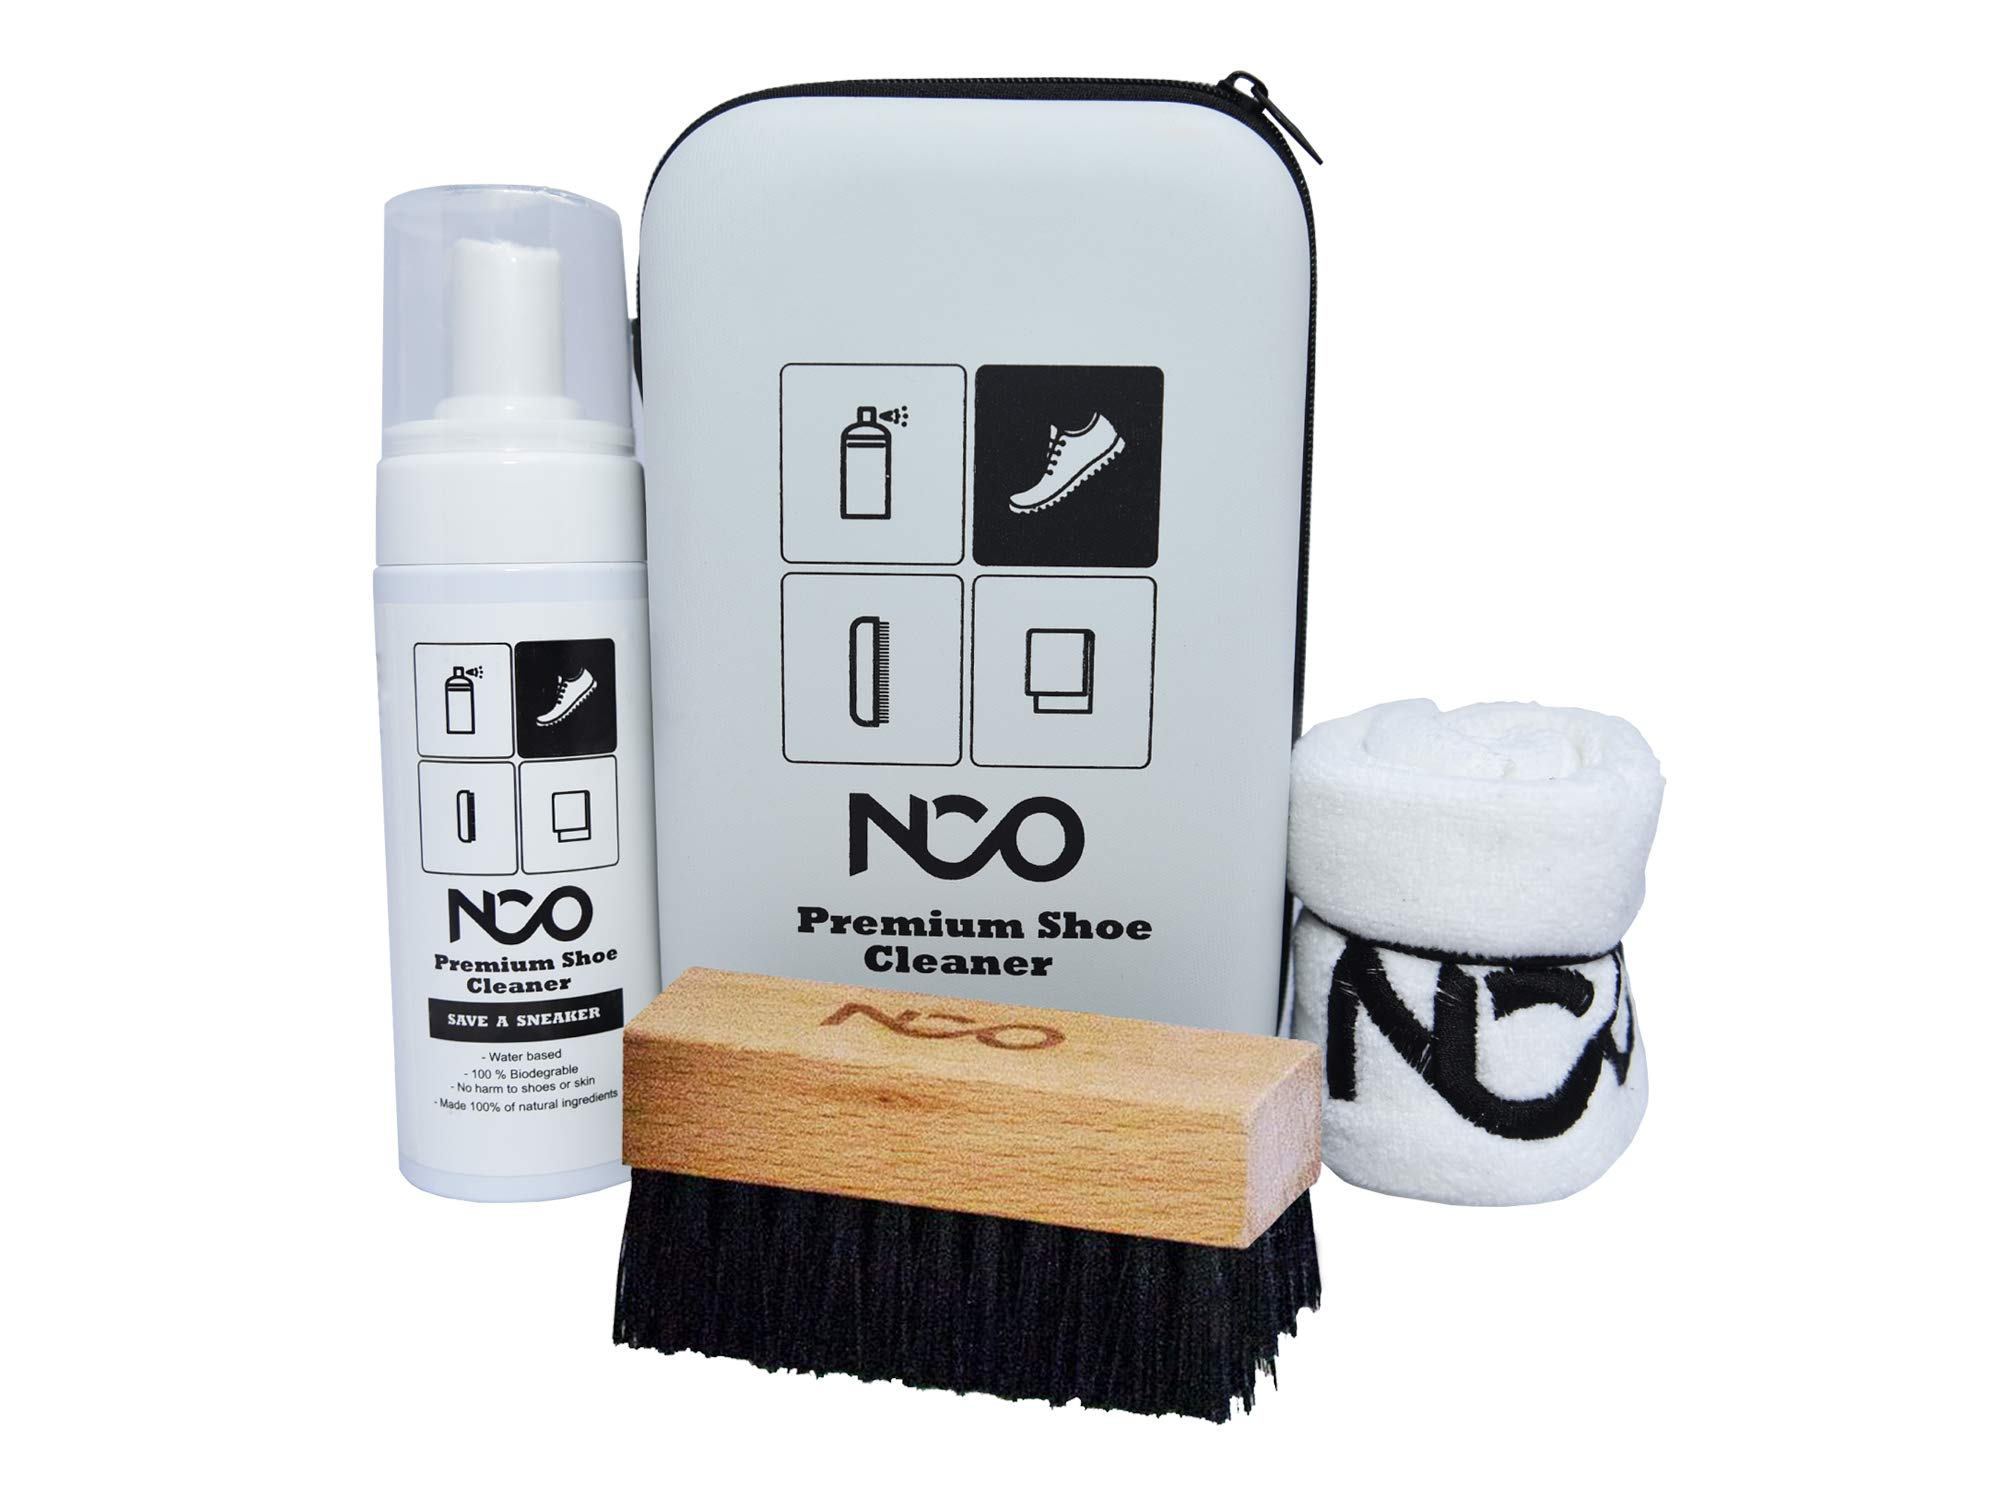 Premium Shoe Sneaker Cleaner Kit 150 ML Bottle Natural Foam Solution Set with Brush and Microfiber Towel Cloth Water Based Formula All in One Portable Kit by NCO (Image #1)